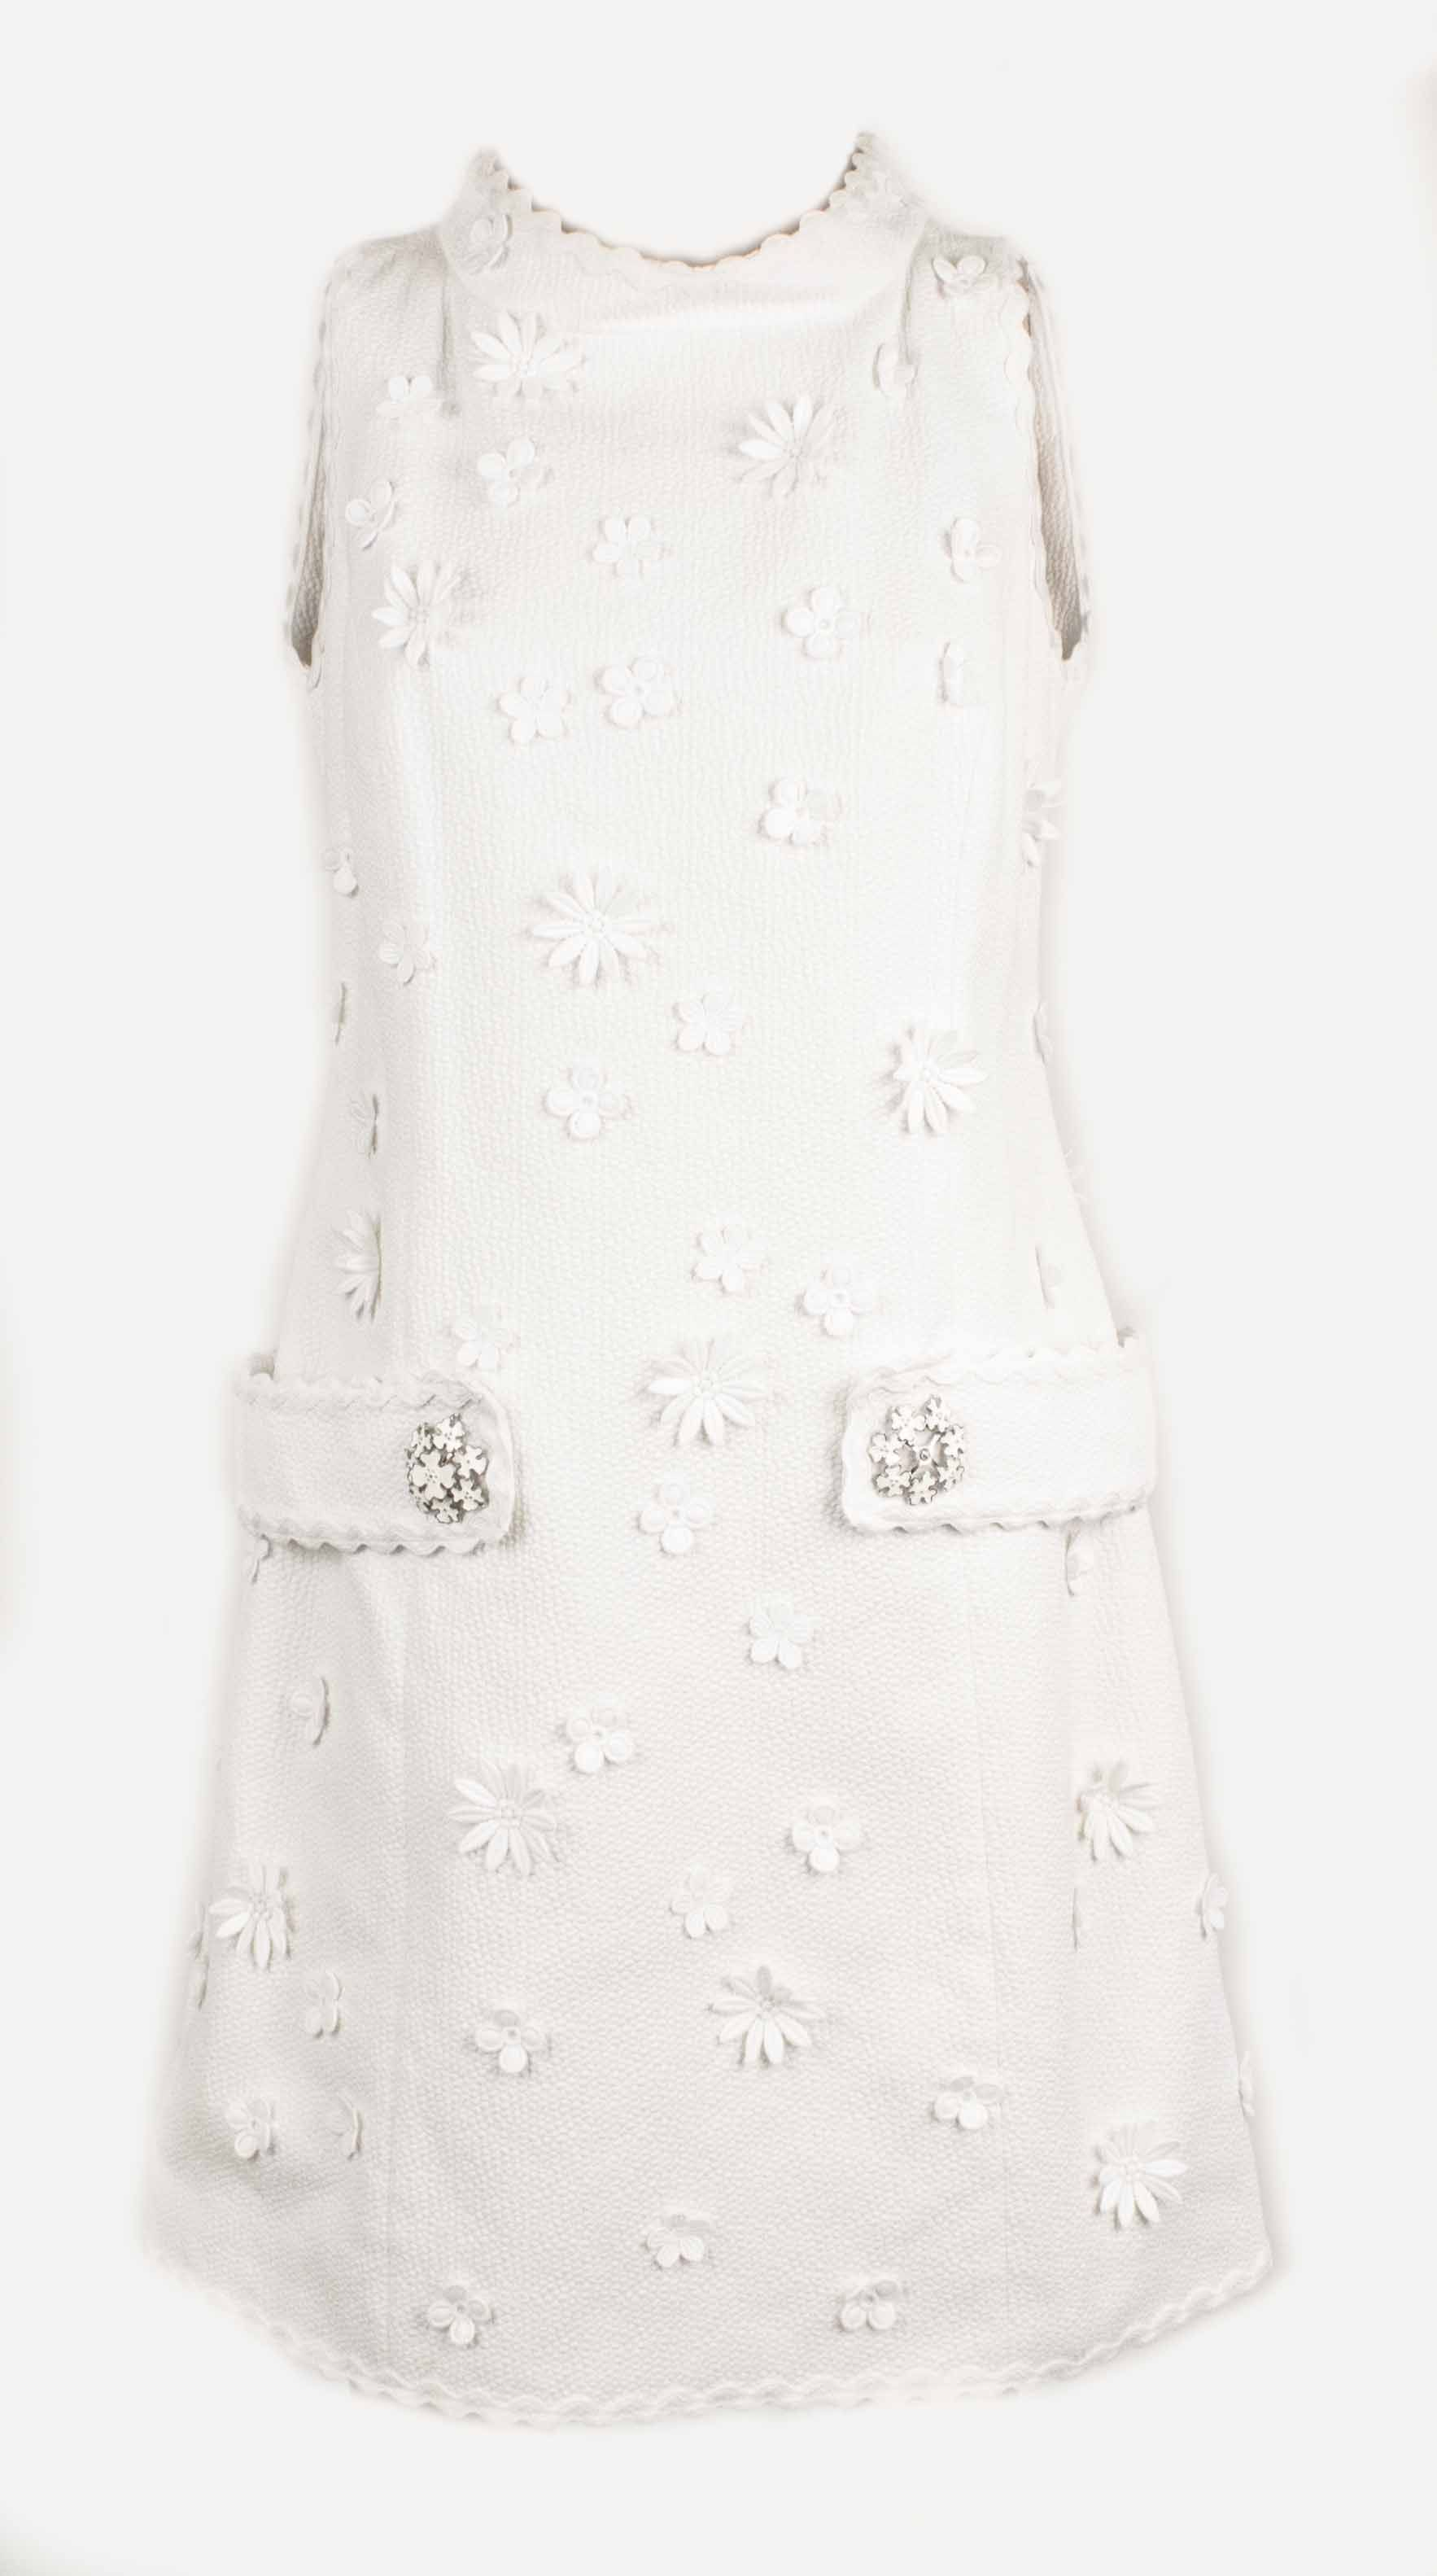 Andrew GN  - http://www.pandoradressagency.com/latest-arrivals/product/andrew-gn-2/